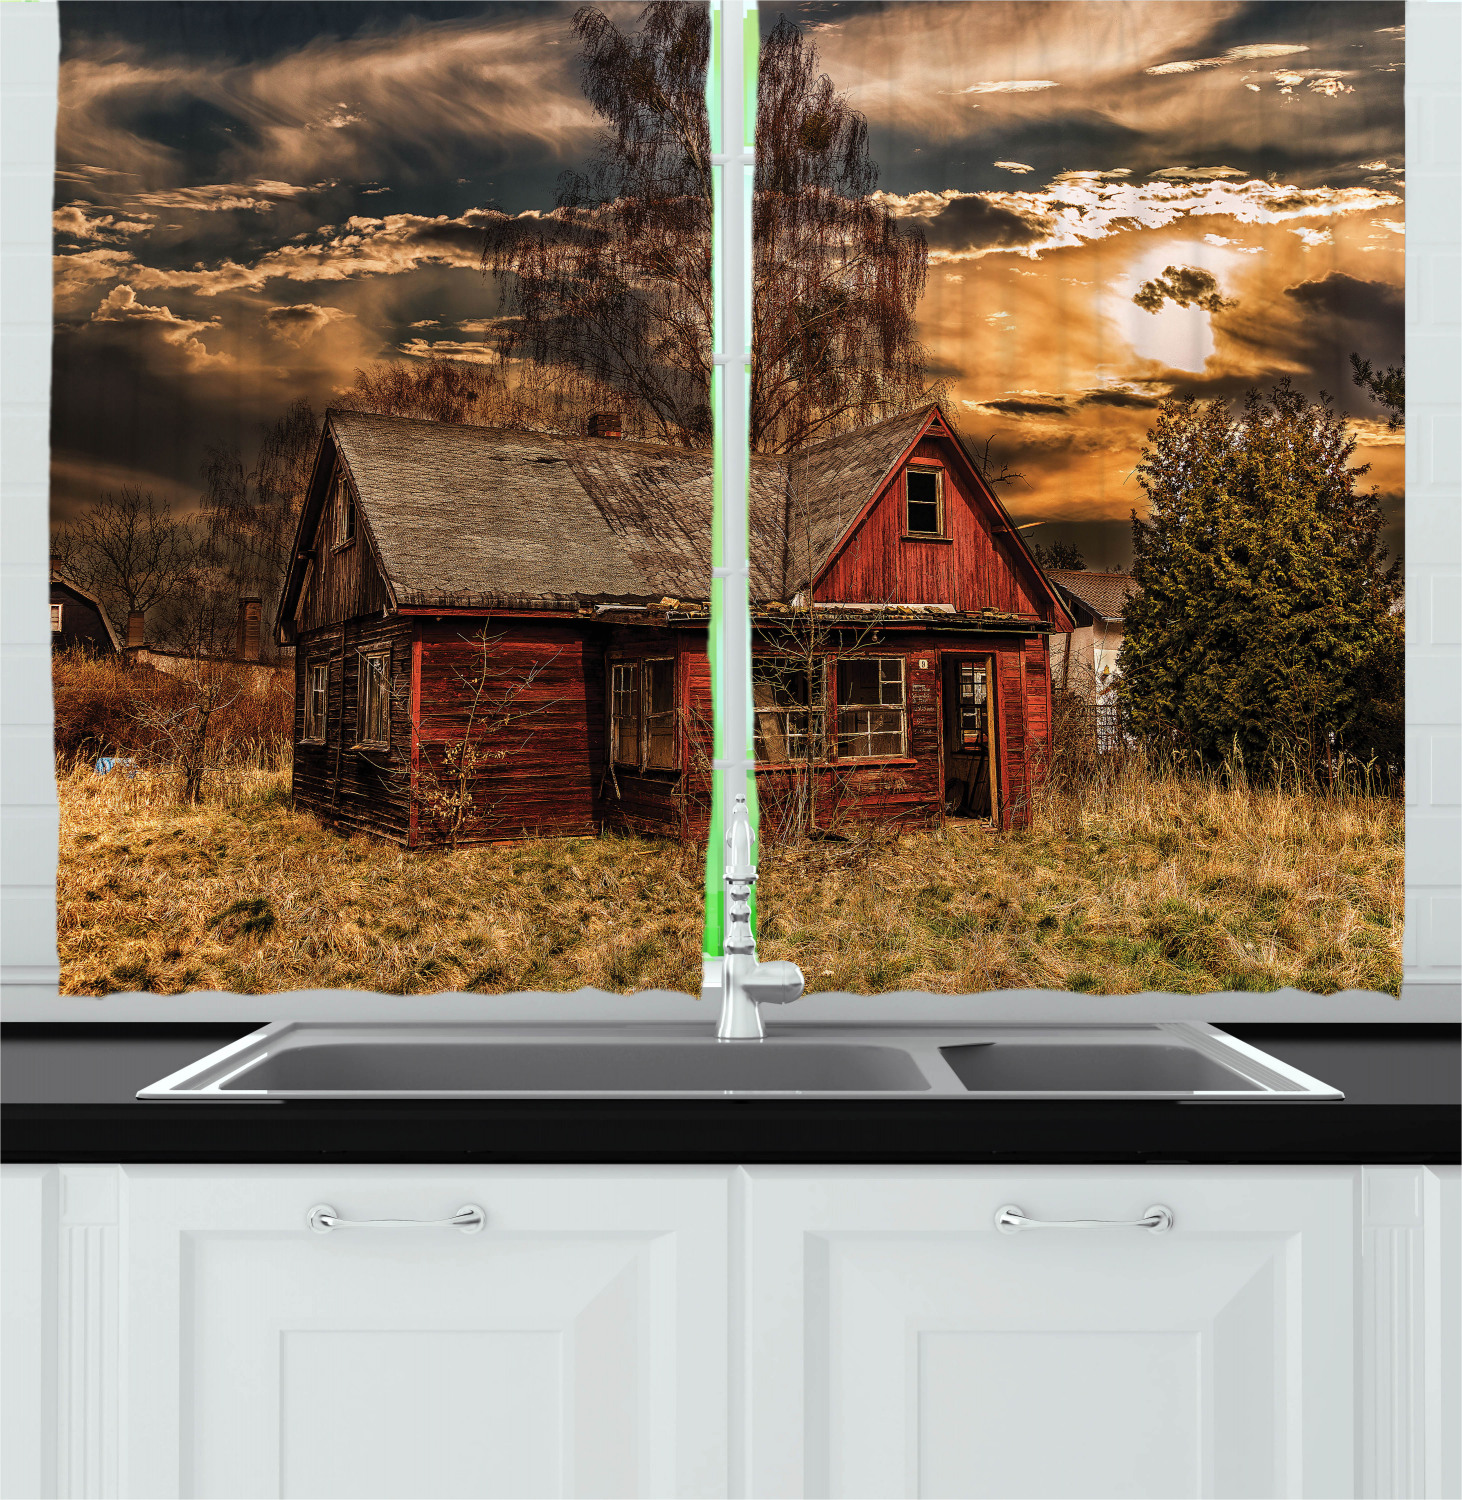 Scenery Curtains 2 Panels Set, Scary Horror Movie Themed